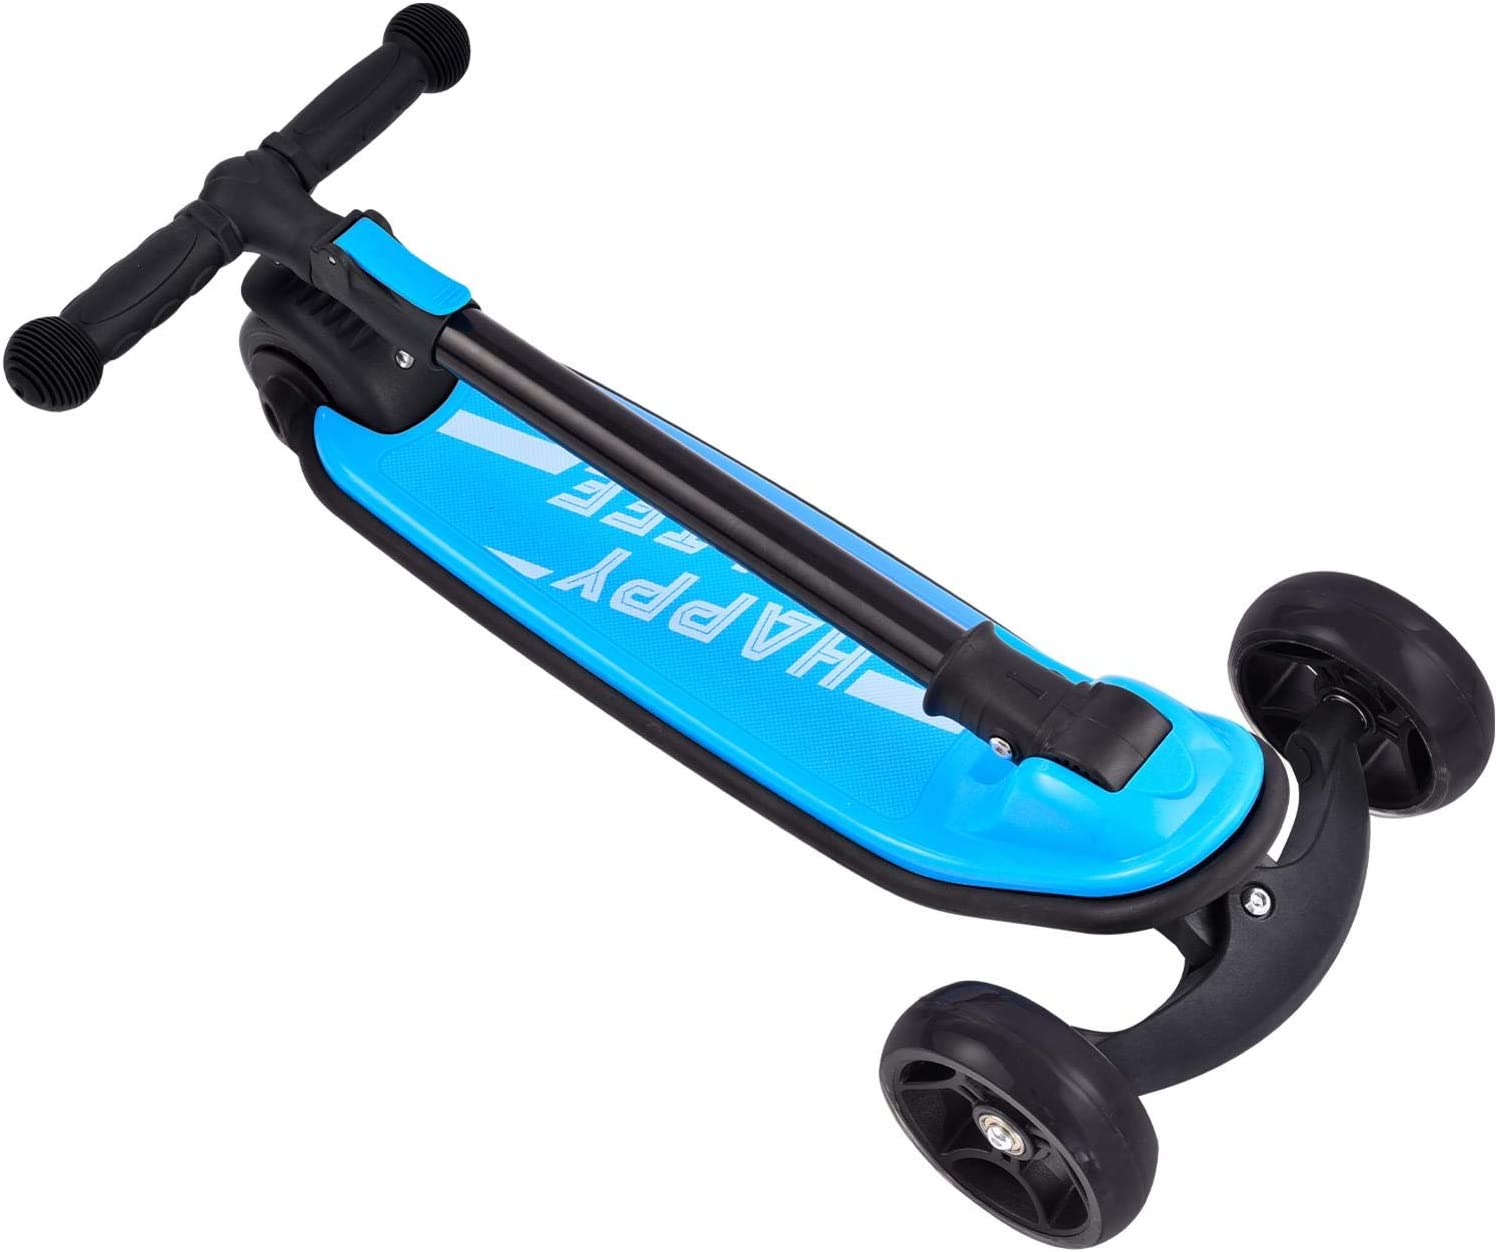 Boys and Girls Scooter with Light Up Wheels /& Adjustable Height Wide Deck Folding Portable Kick Scooters for Children 2-6 Years Old 3 Wheel Scooters Kick Scooter for Kids and Toddlers